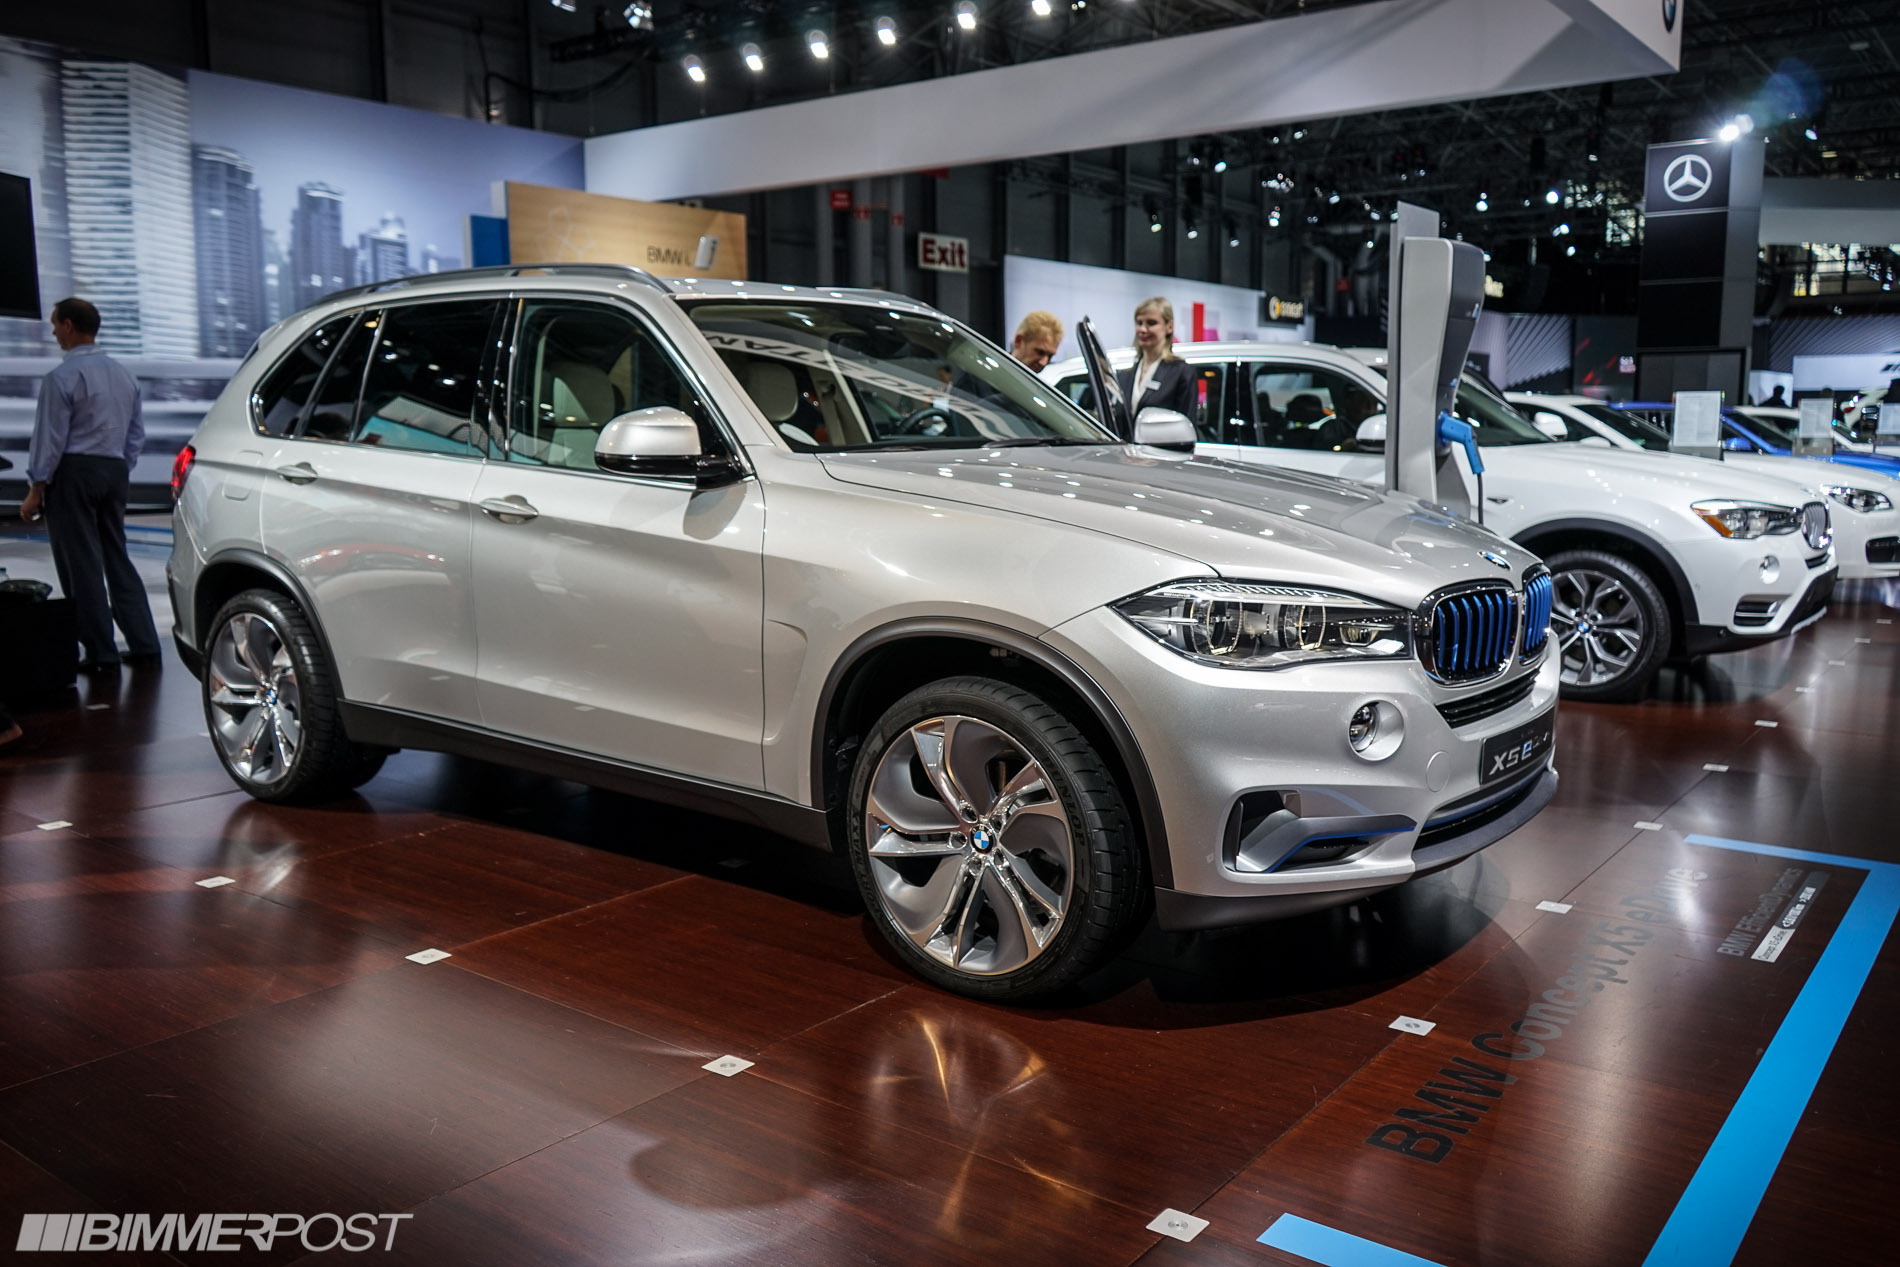 2019 BMW X5 eDrive Concept photo - 5